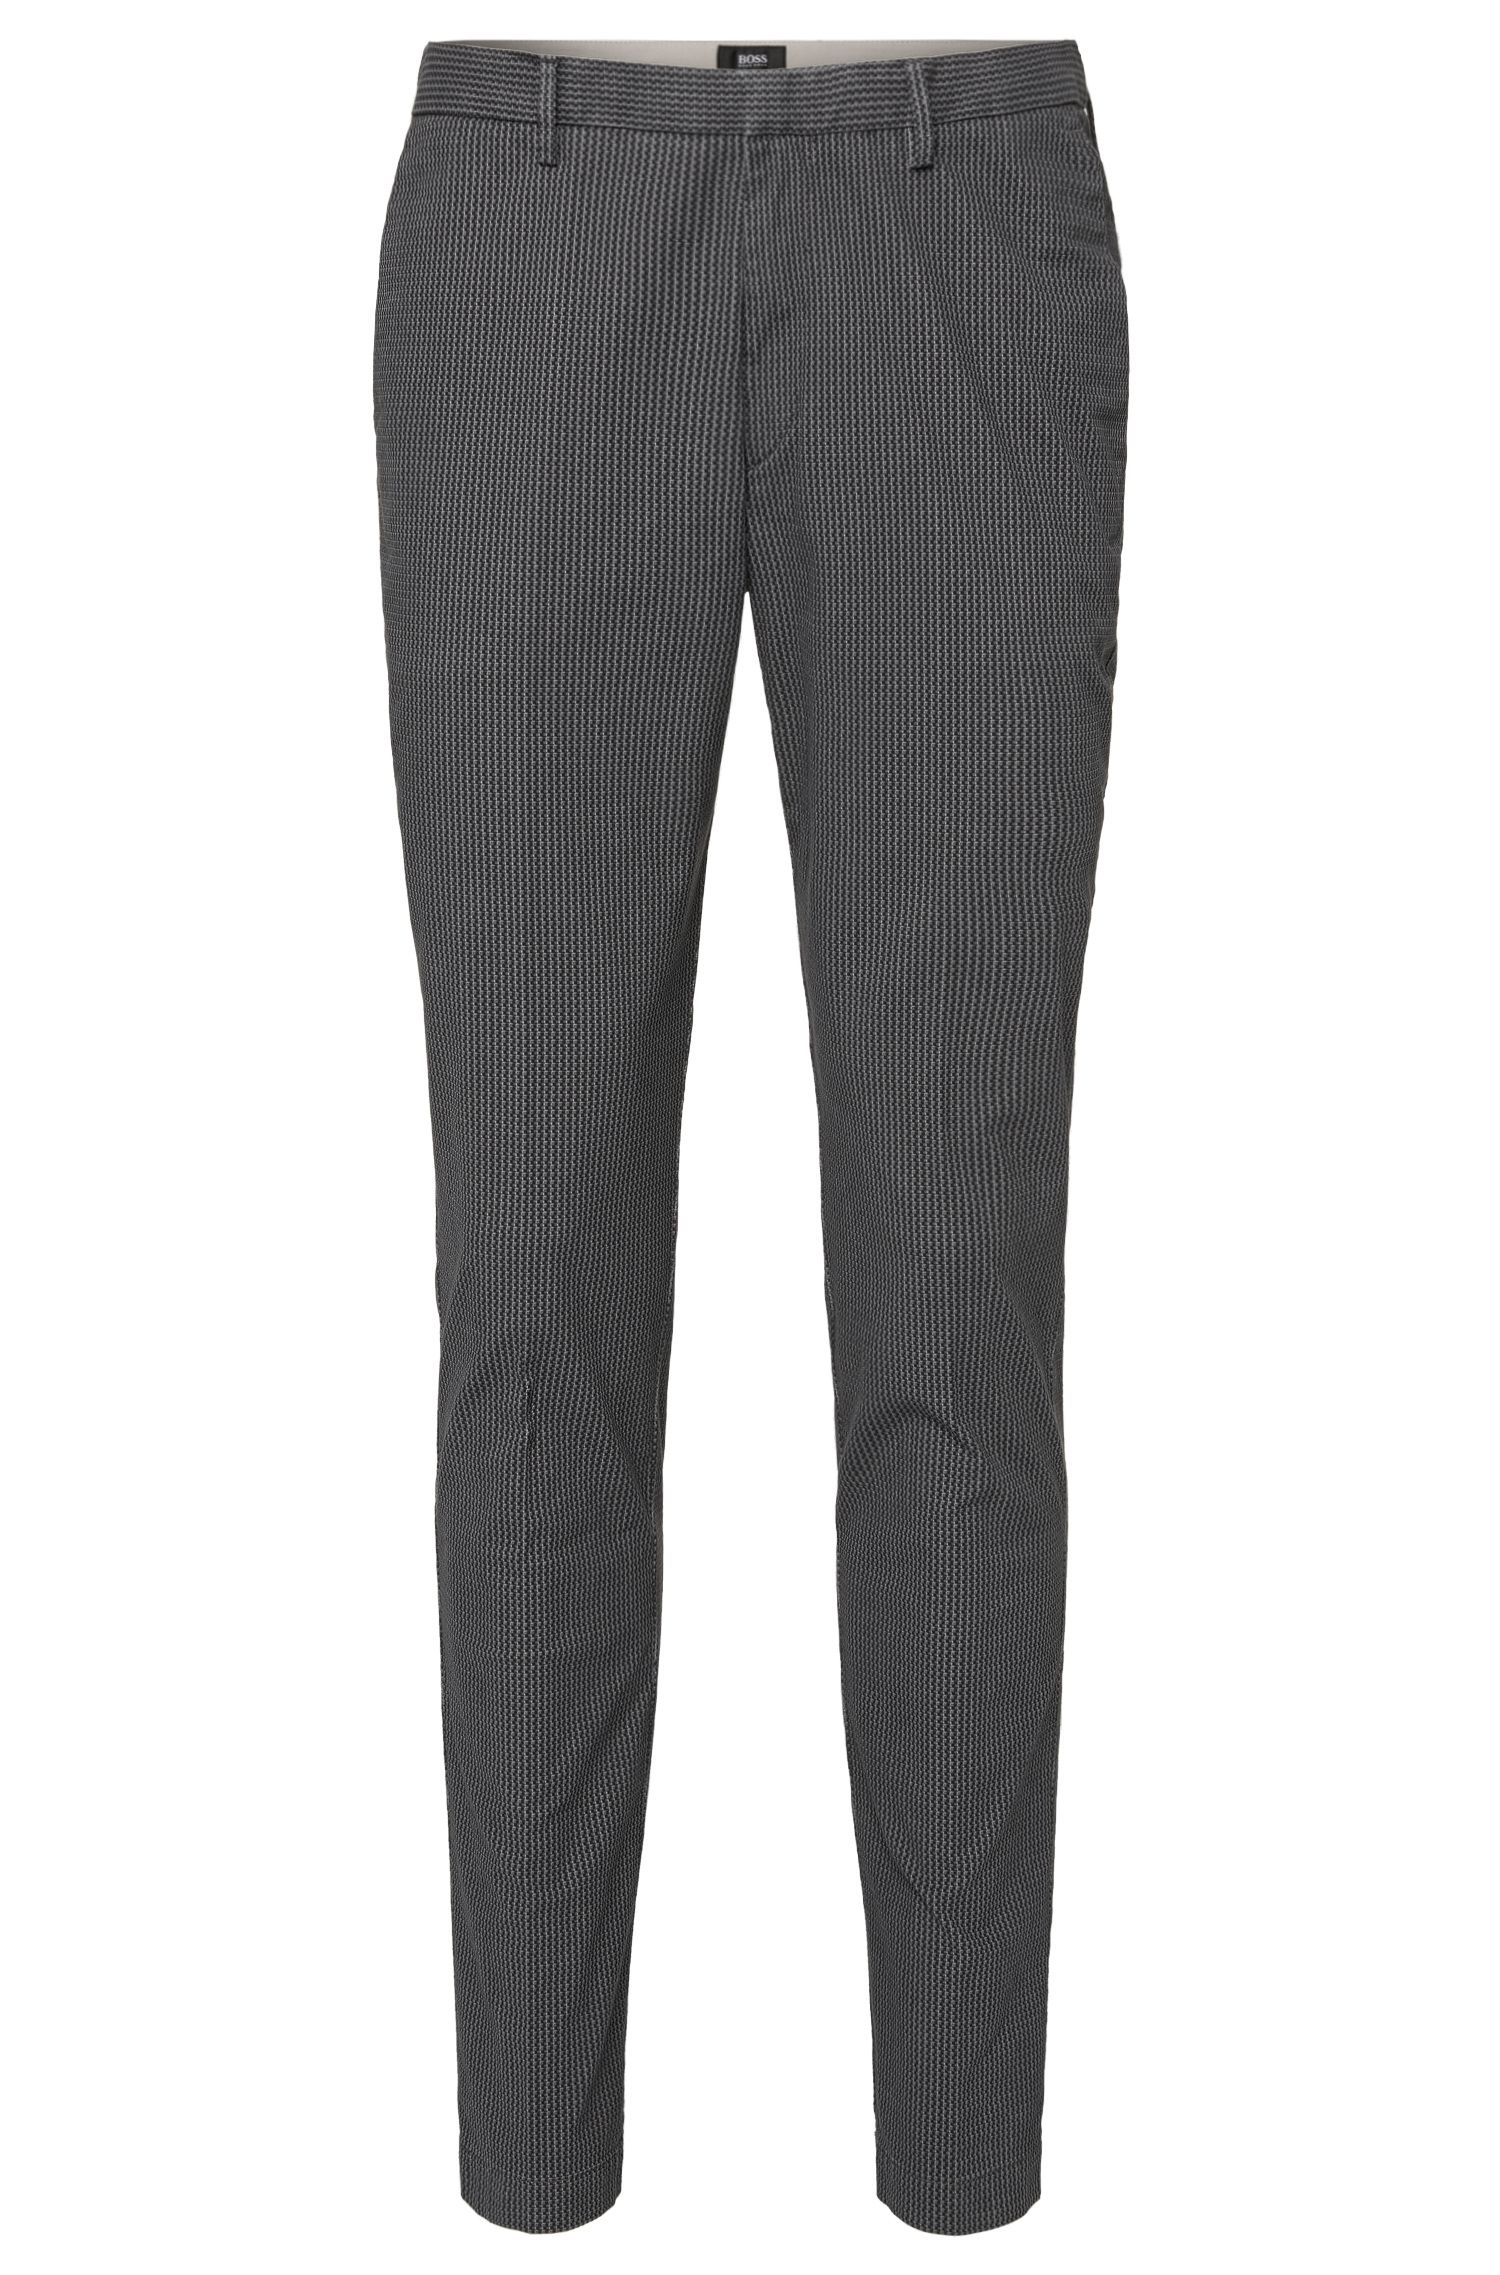 'Kaito-W' | Extra Slim Fit, Stretch Cotton Pants